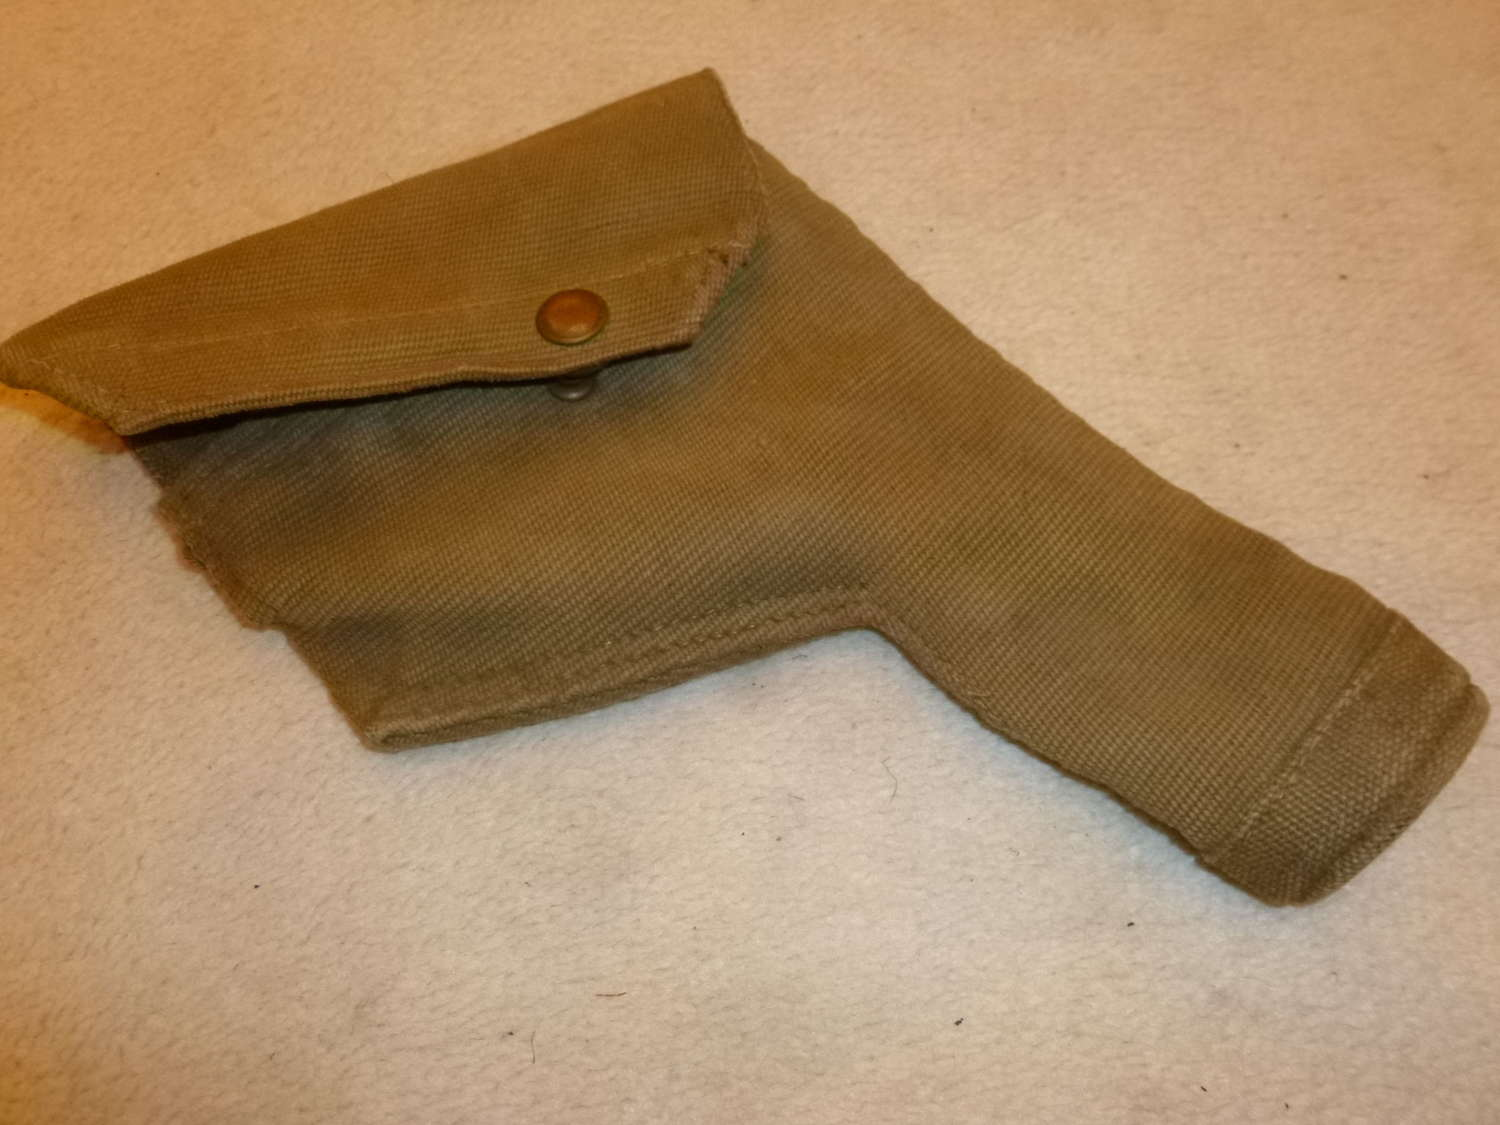 British Army 37 pattern service revolver holster